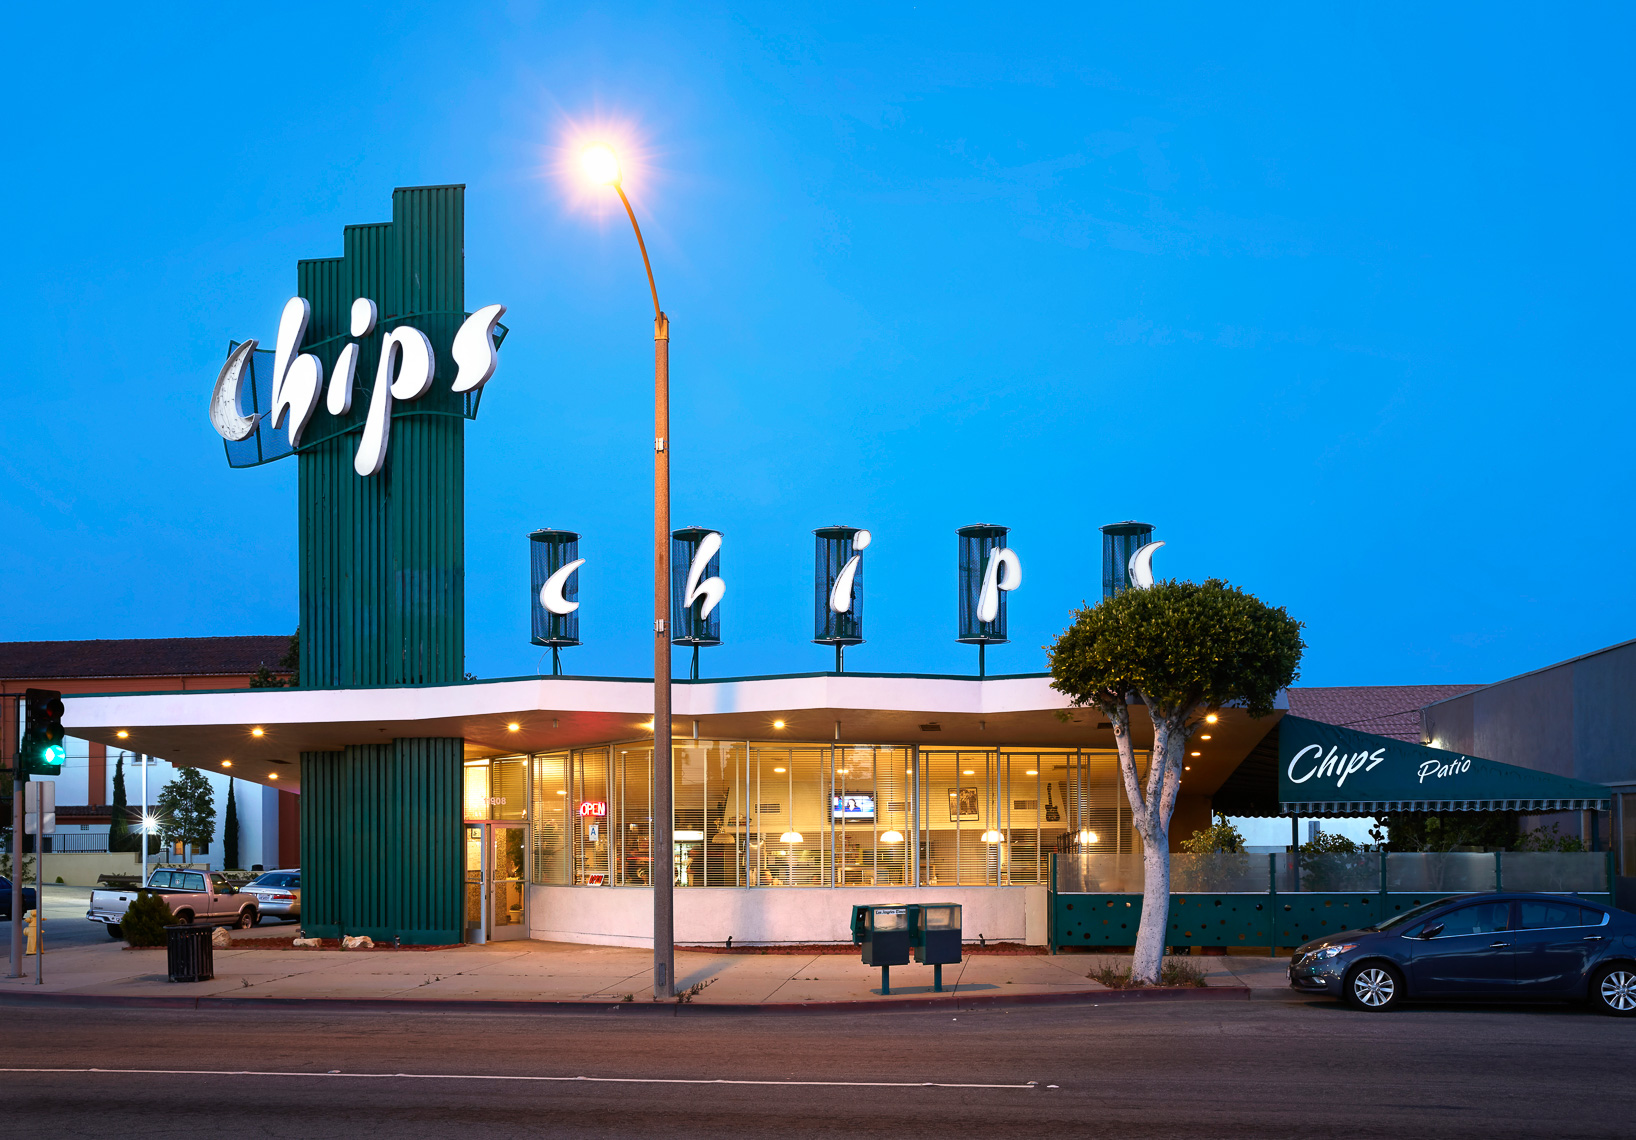 Exterior shot of midcentury diner at dusk